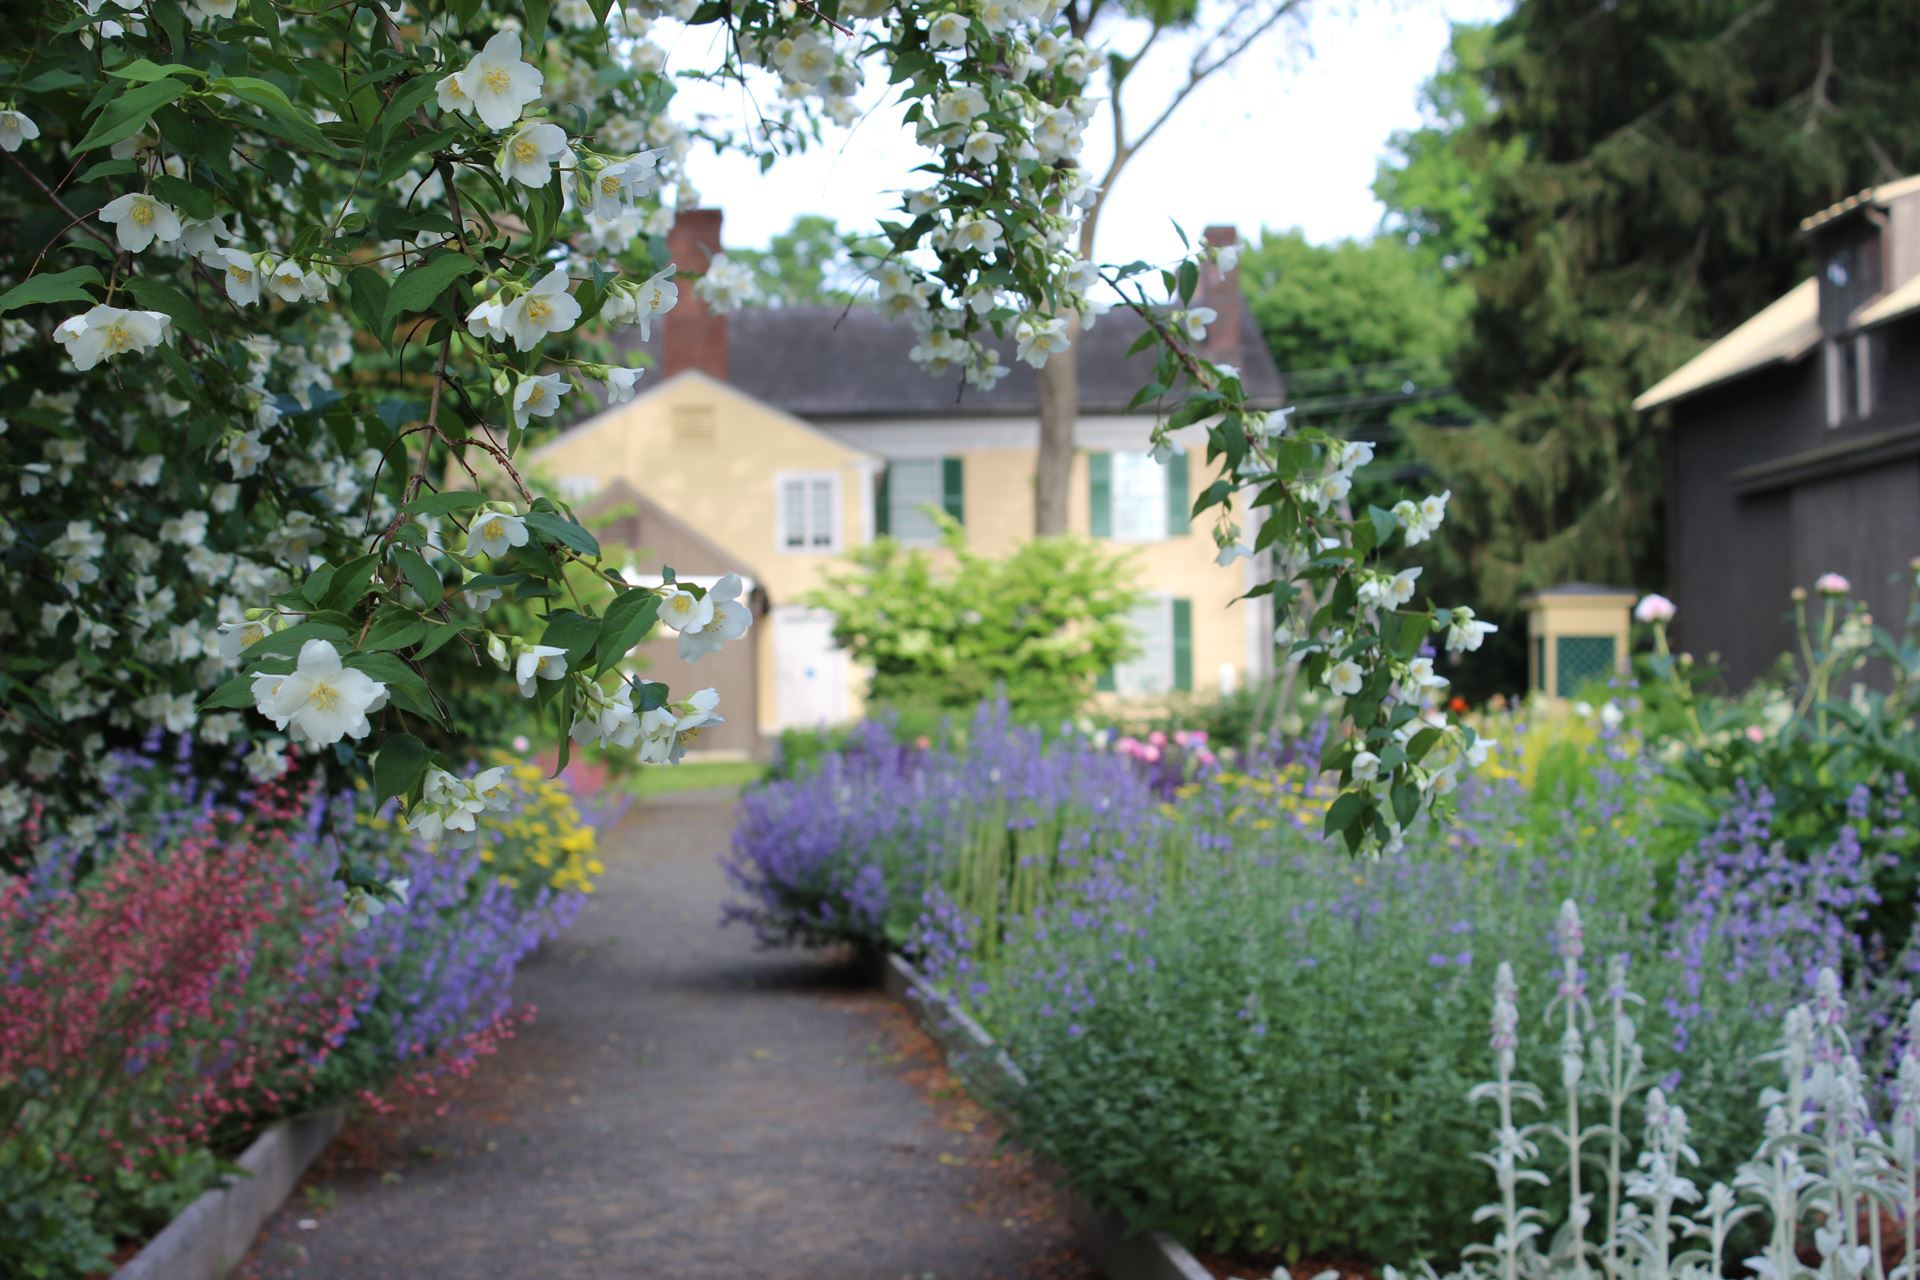 Gardens at the Florence Griswold Museum